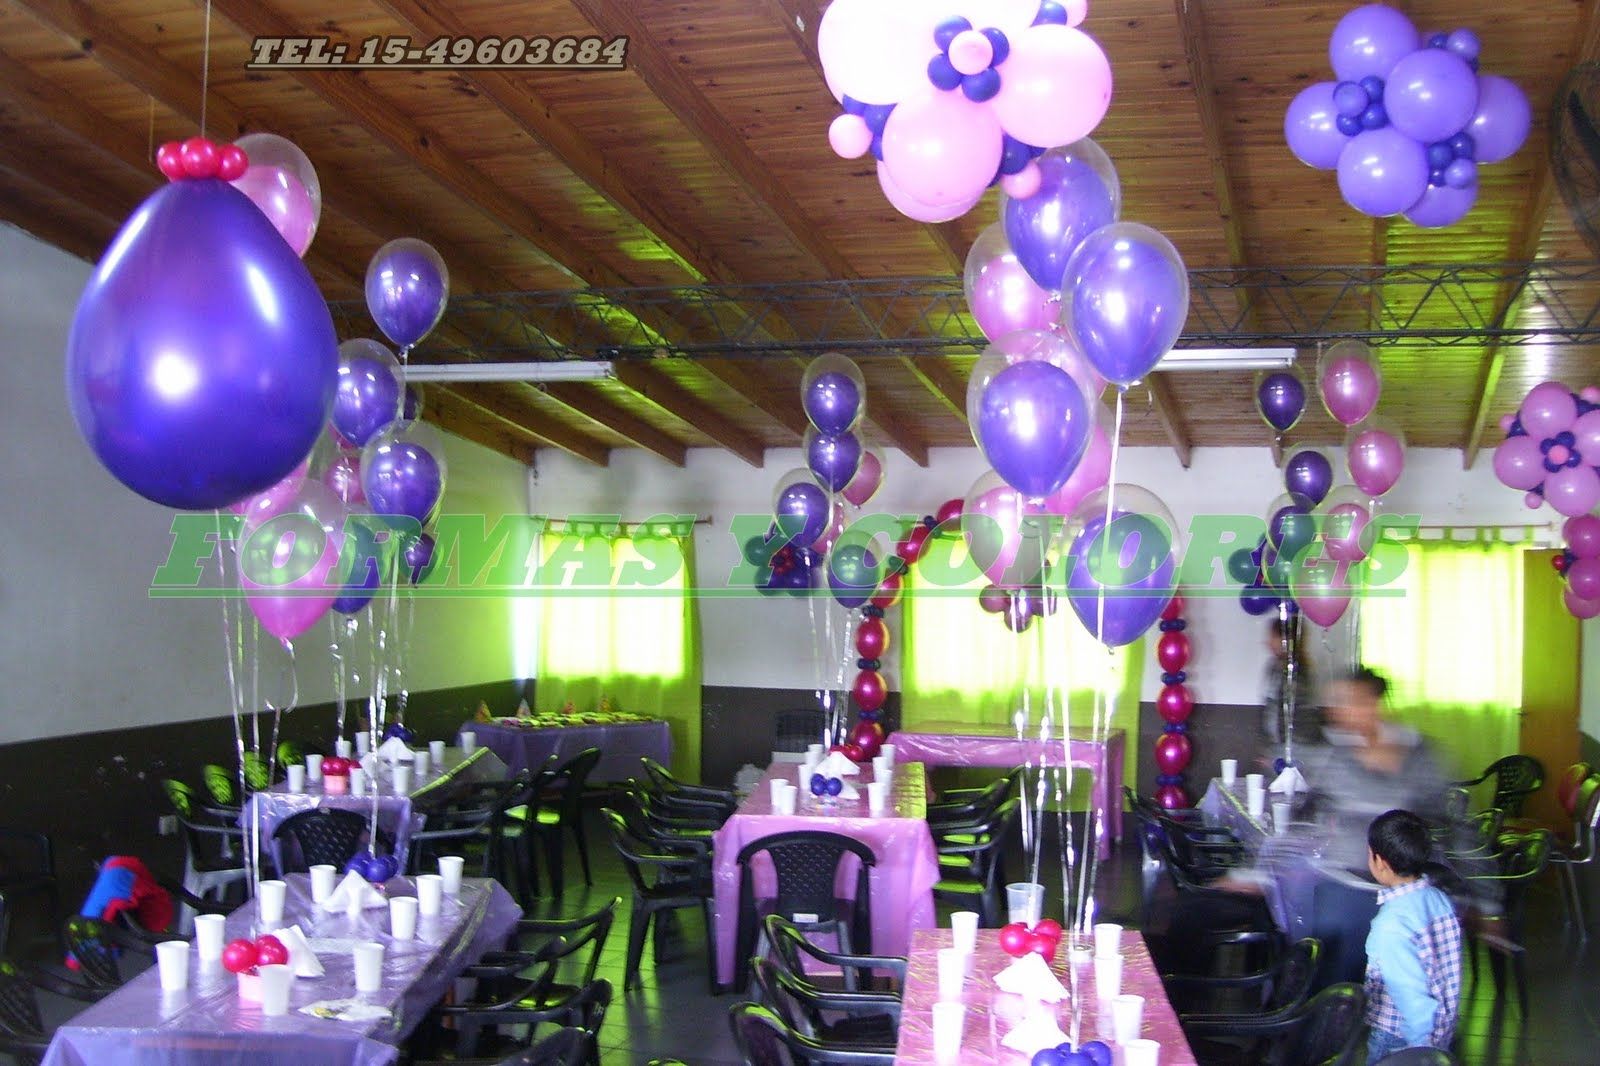 Decoracion con globos - Decoraciones de fotos ...